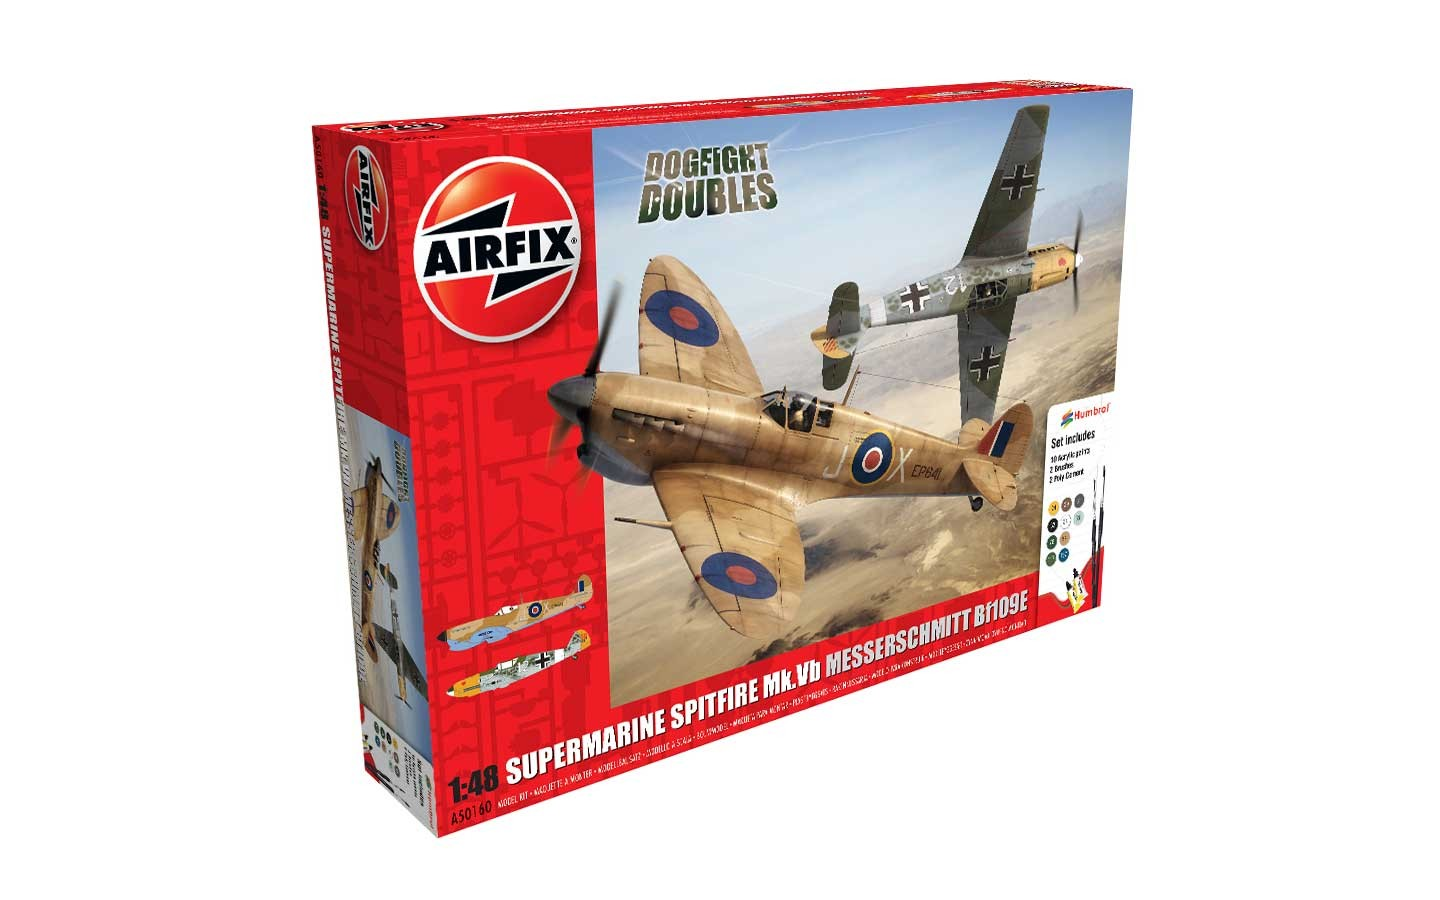 Airfix 1/48 Dogfight Doubles BF109 vs Spitfire Mk Vb A50160